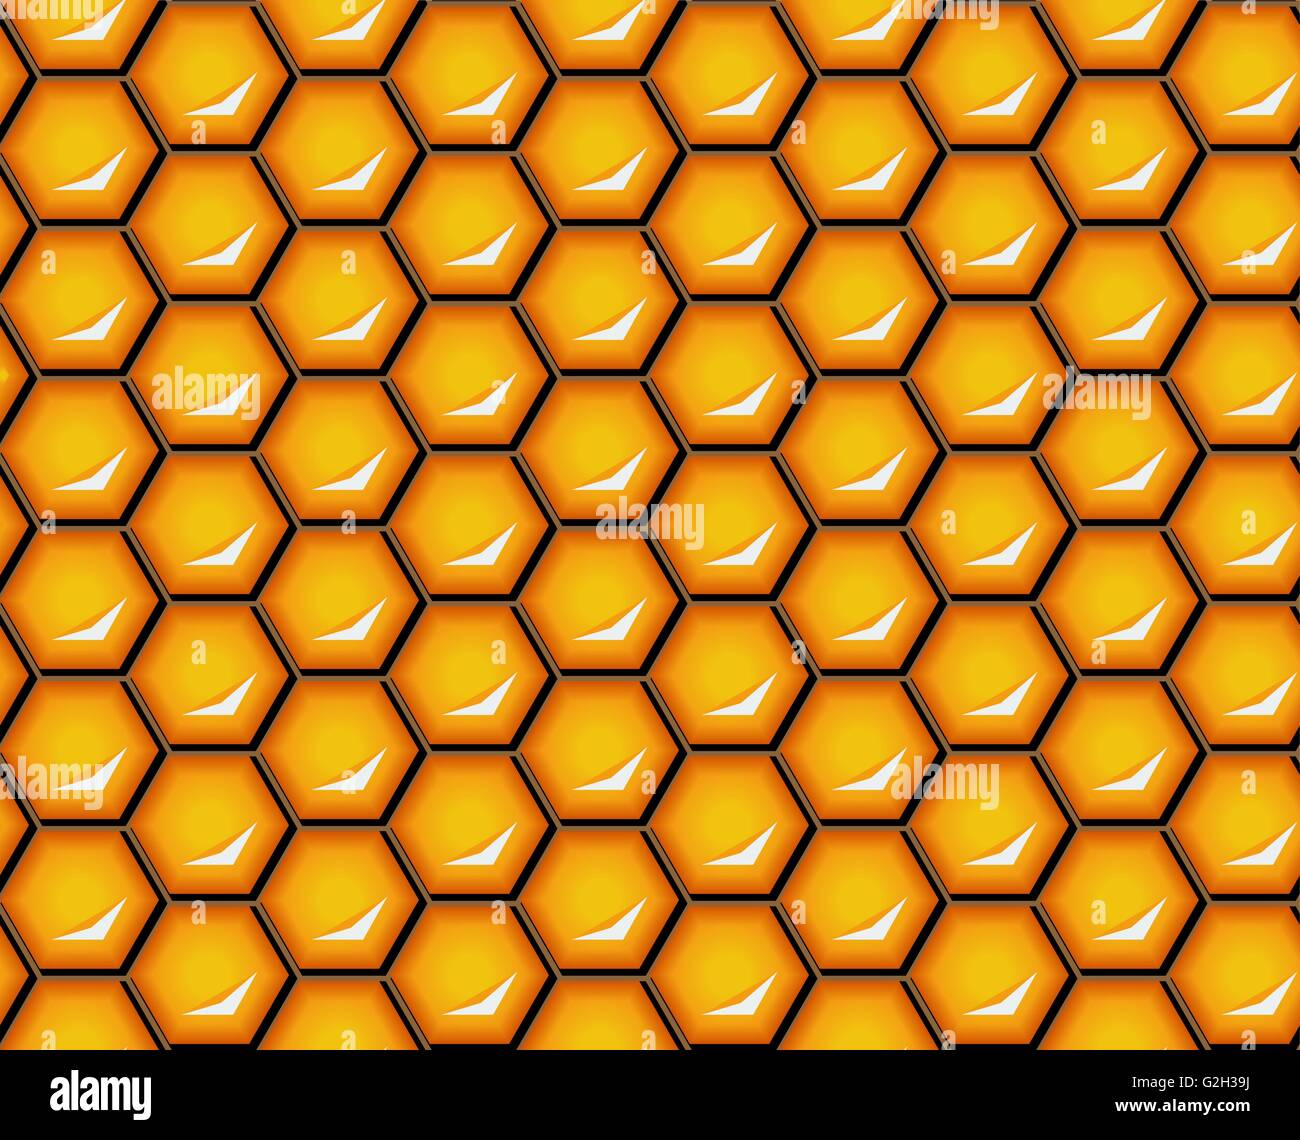 Vector illustration seamless honeycomb background pattern shiny seamless honeycomb background pattern shiny hexagonal cells honey comb pattern is suitable for packaging voltagebd Image collections